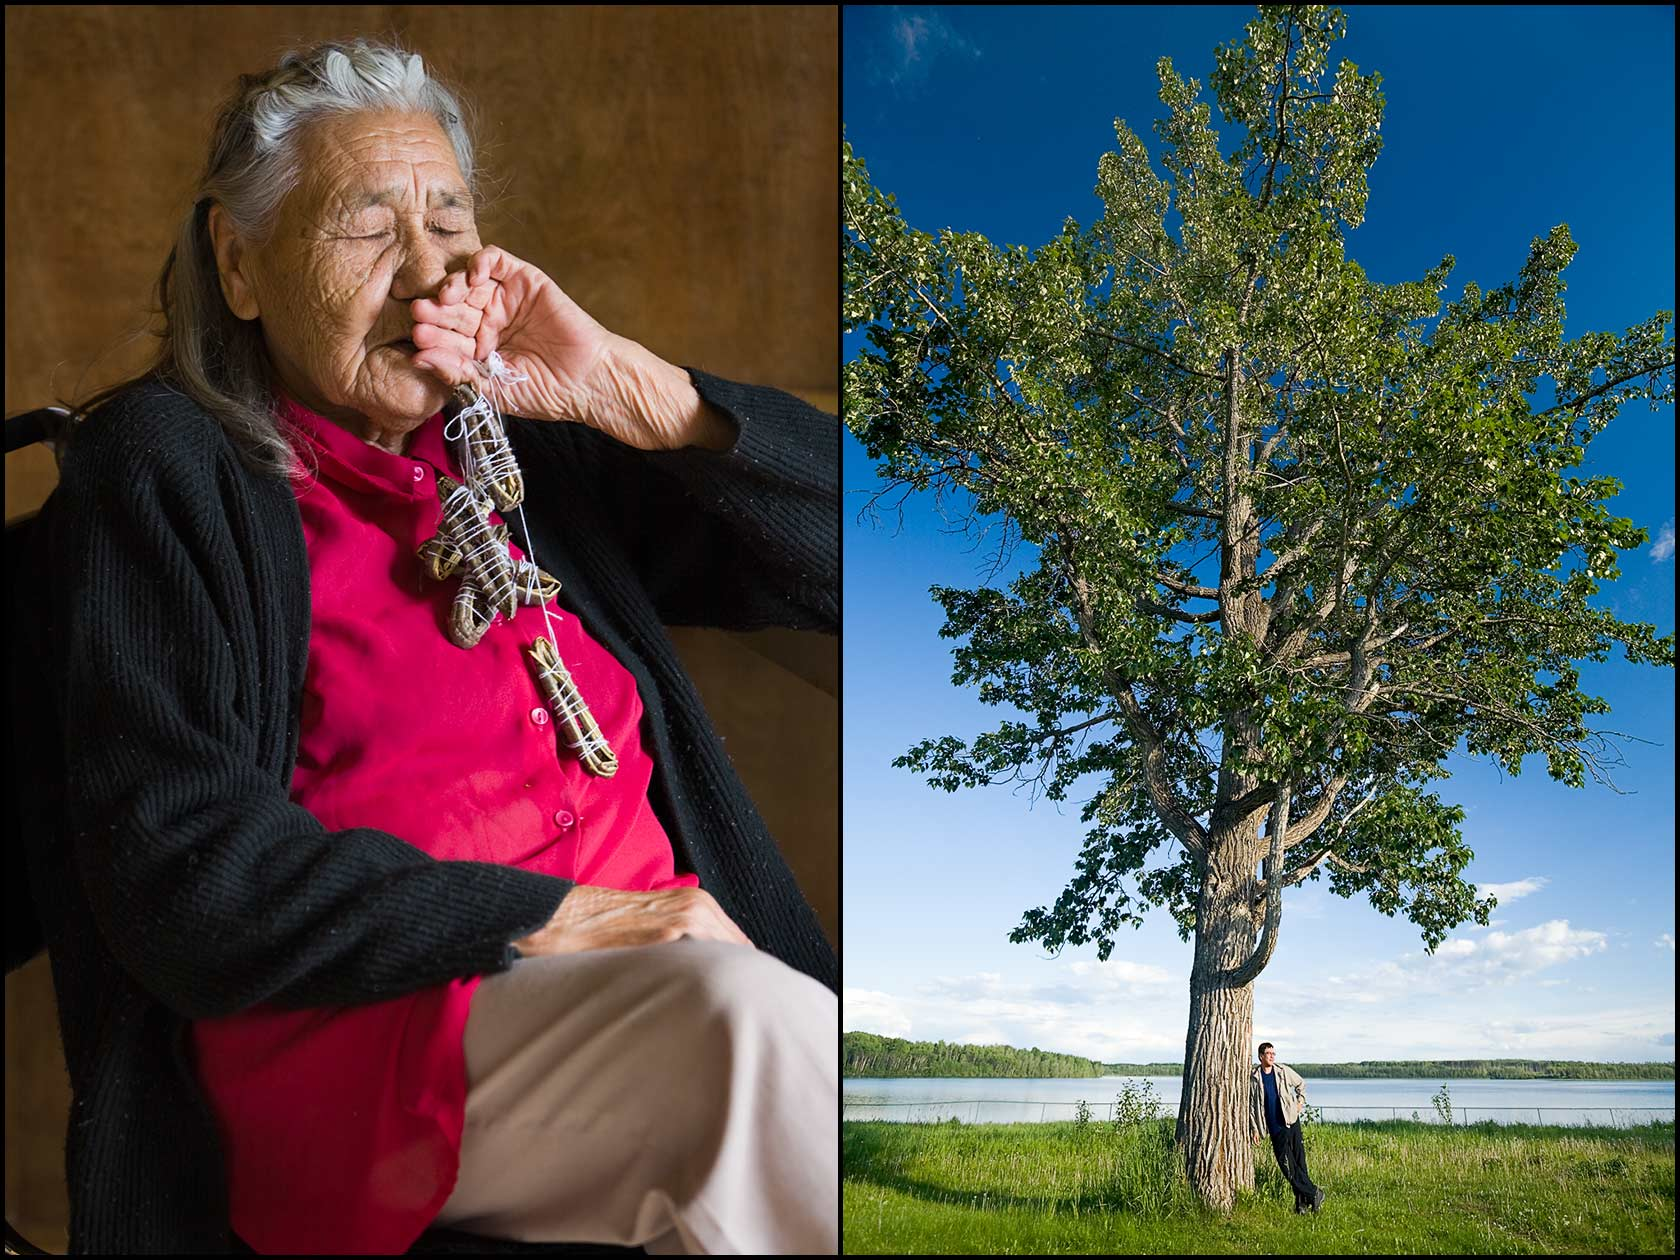 A senior woman from the Metis People (Canada) clutches healing seed pods (L) A Metis People man stands next to a tree by Kelly Lake in Canada (R).